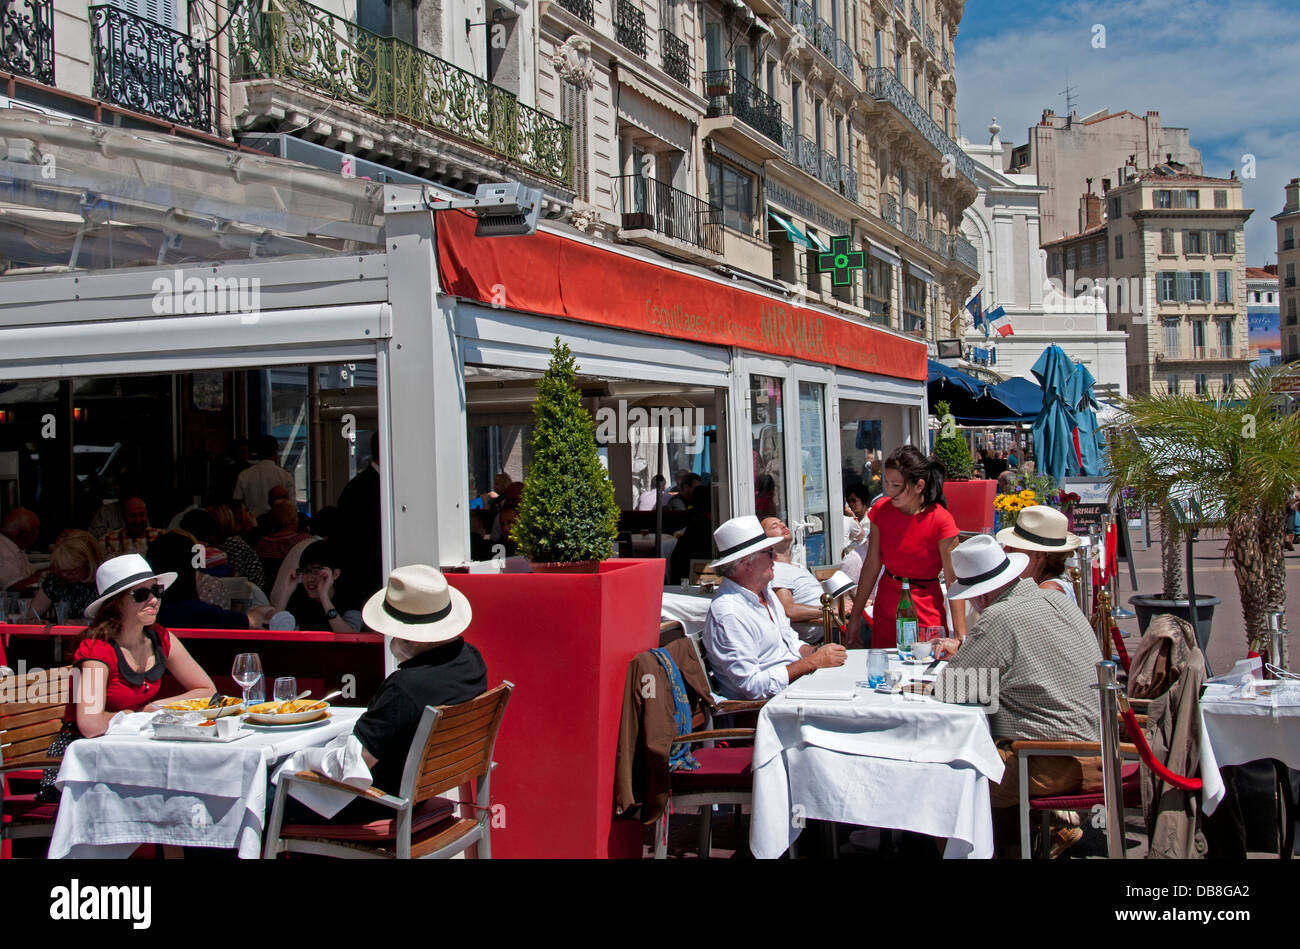 miramar bouillabaisse fish soup restaurant cafe bar pub marseilles stock photo 58580762 alamy. Black Bedroom Furniture Sets. Home Design Ideas